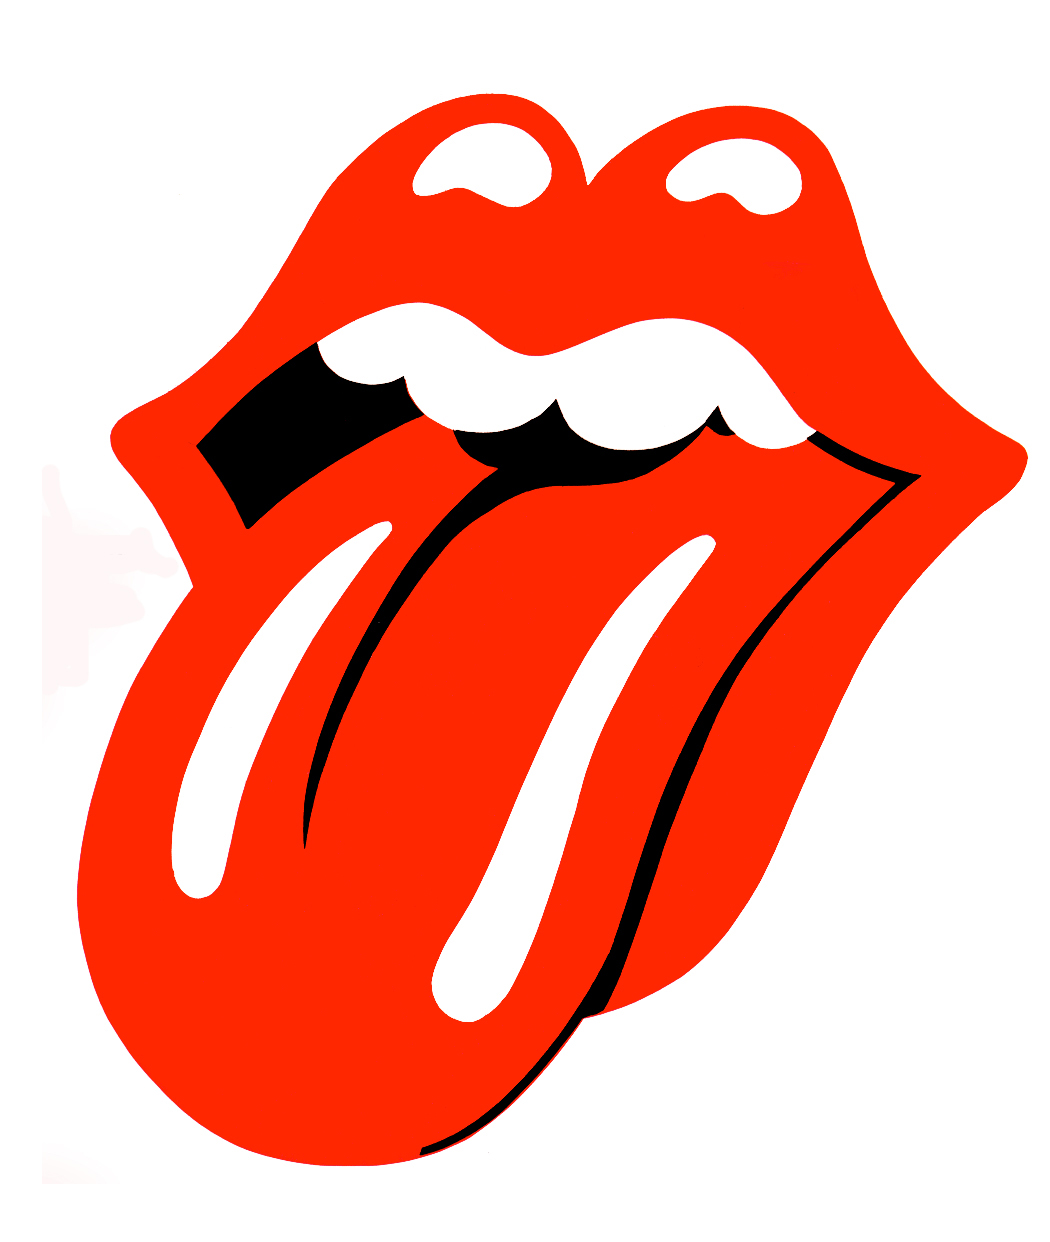 Rolling Stones Tongue Logo and the Sweet Taste of Joy Coincidence or ...